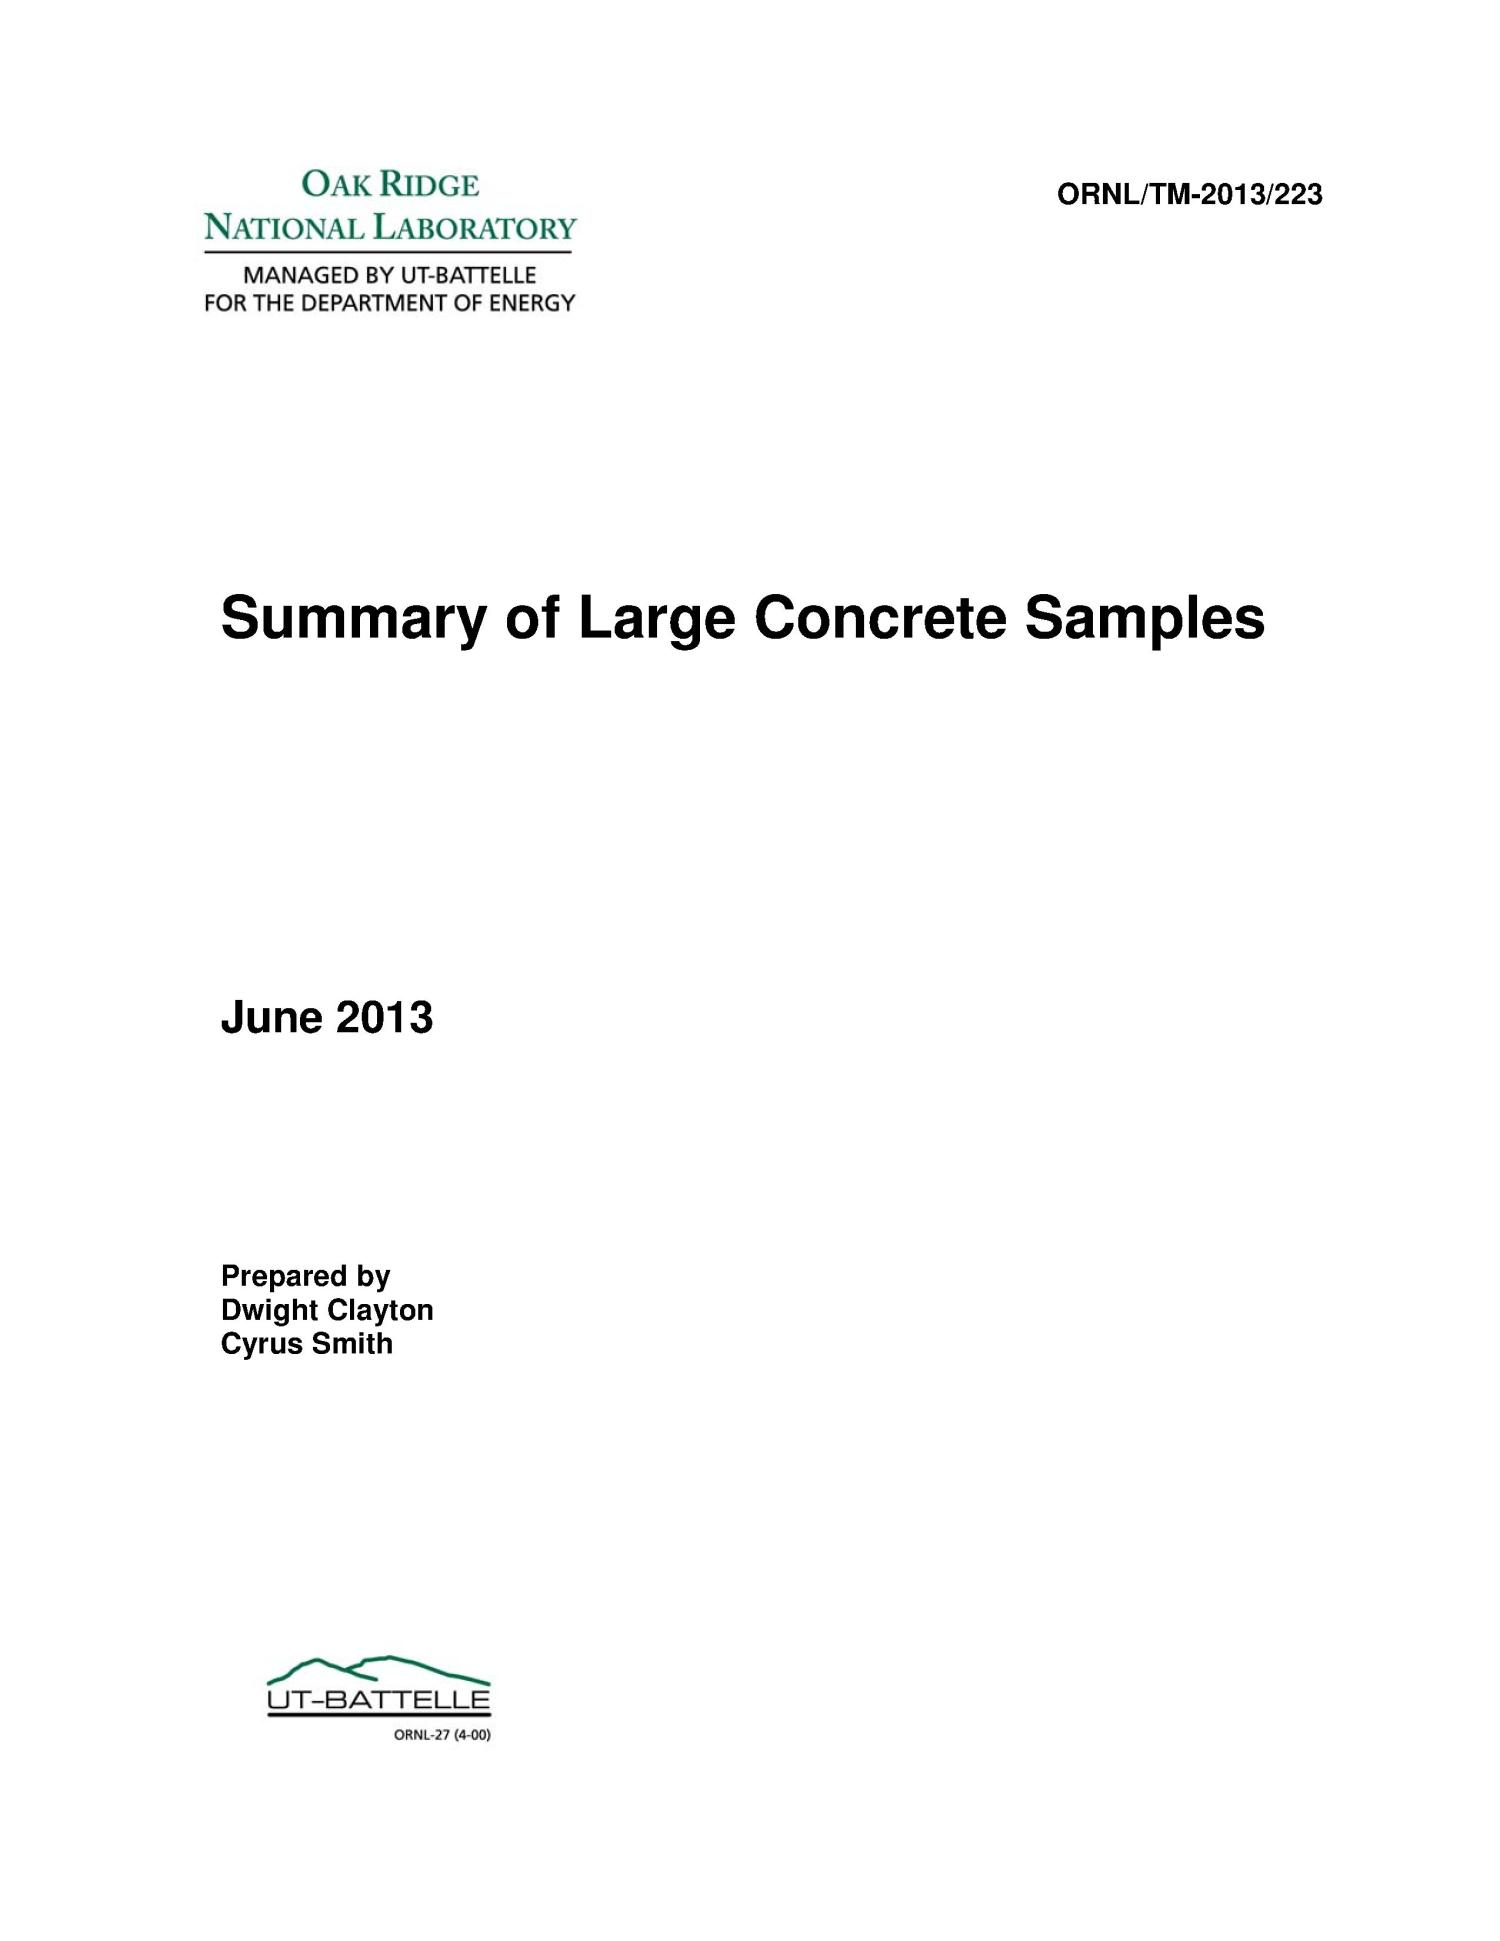 Summary of Large Concrete Samples                                                                                                      [Sequence #]: 1 of 57